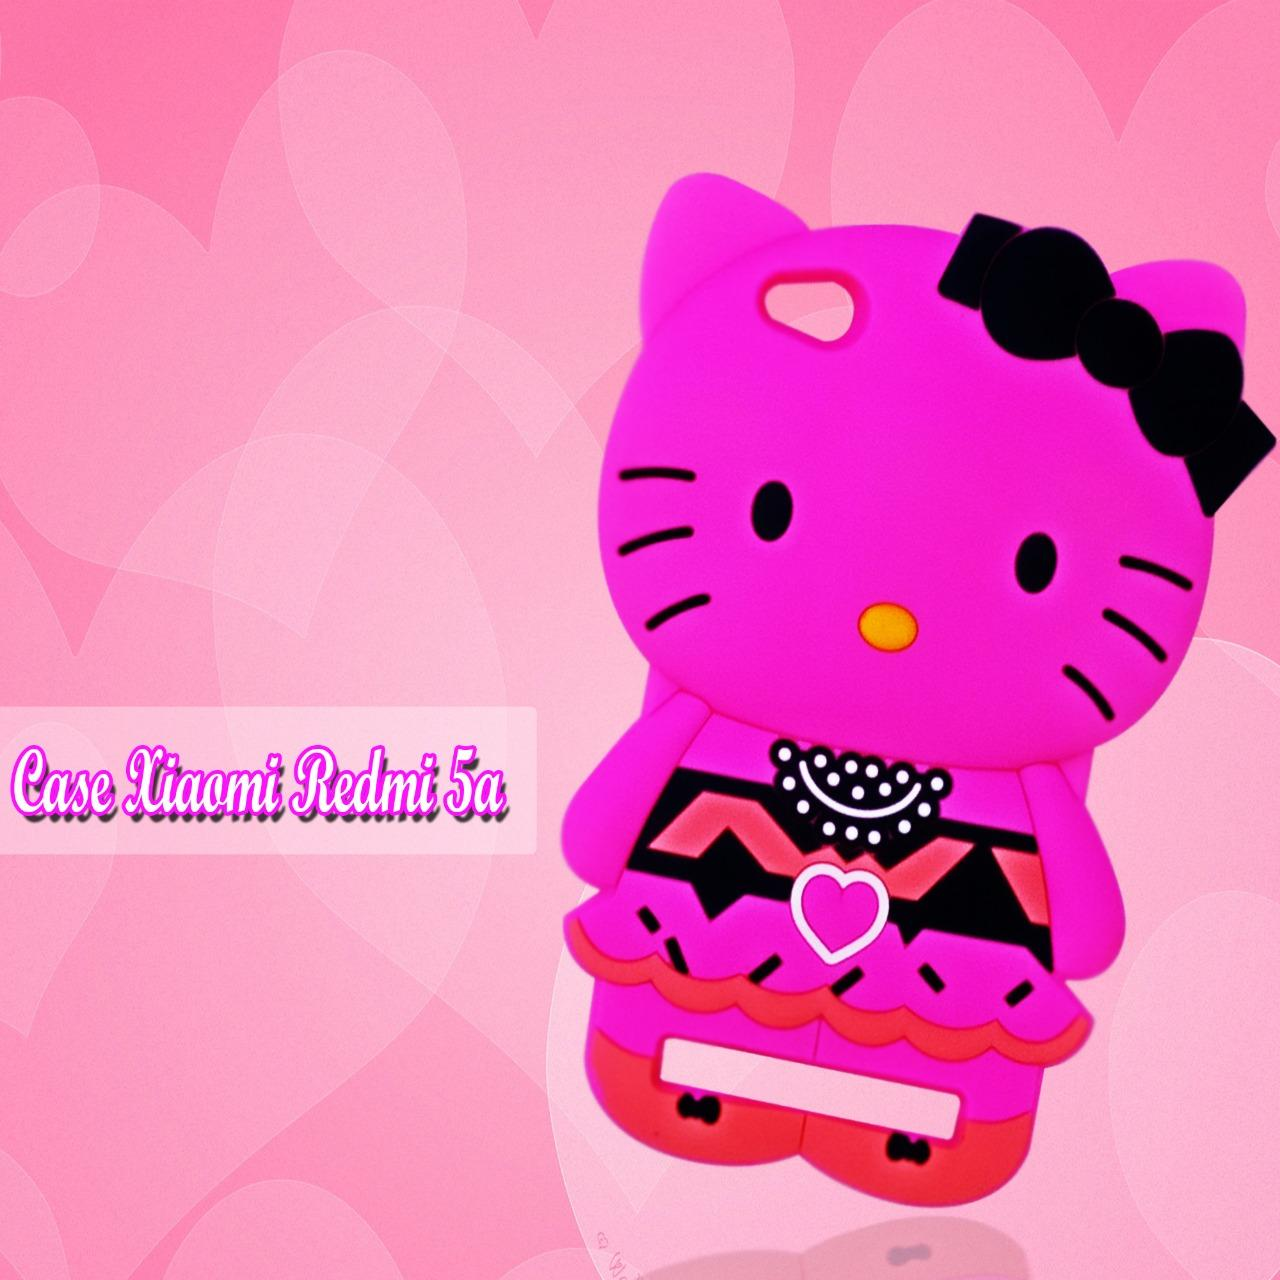 Marintri Case Xiaomi Redmi 5A New Hello Kitty Fashion Pink Panta